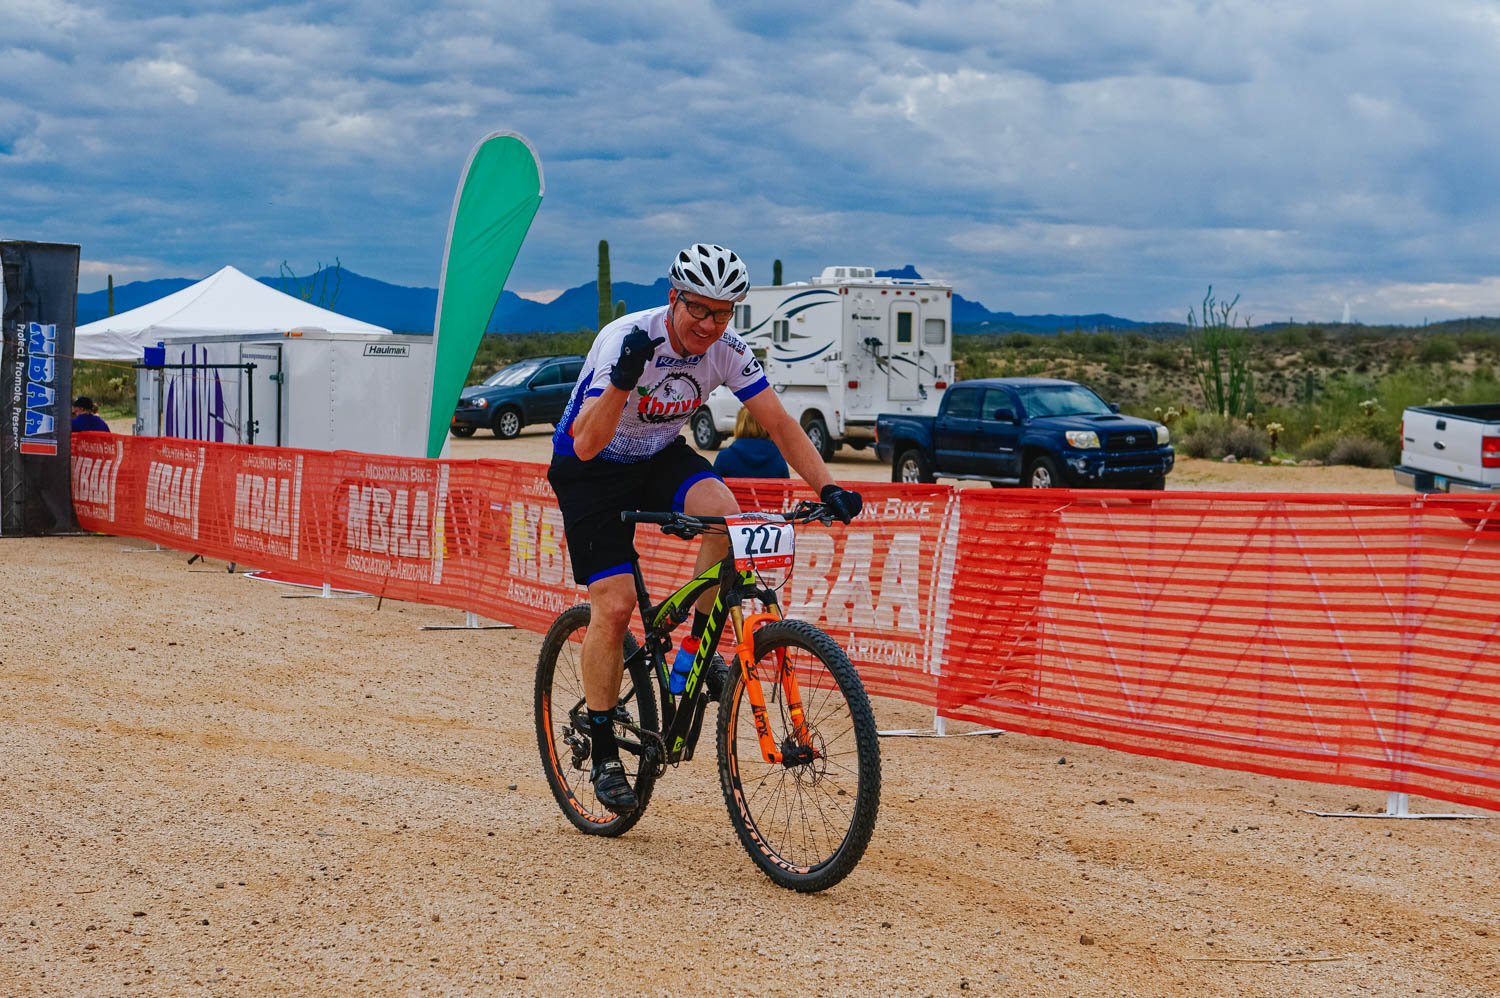 Jason was also racing in the Single Speed Expert category. One more sports' loop to go!